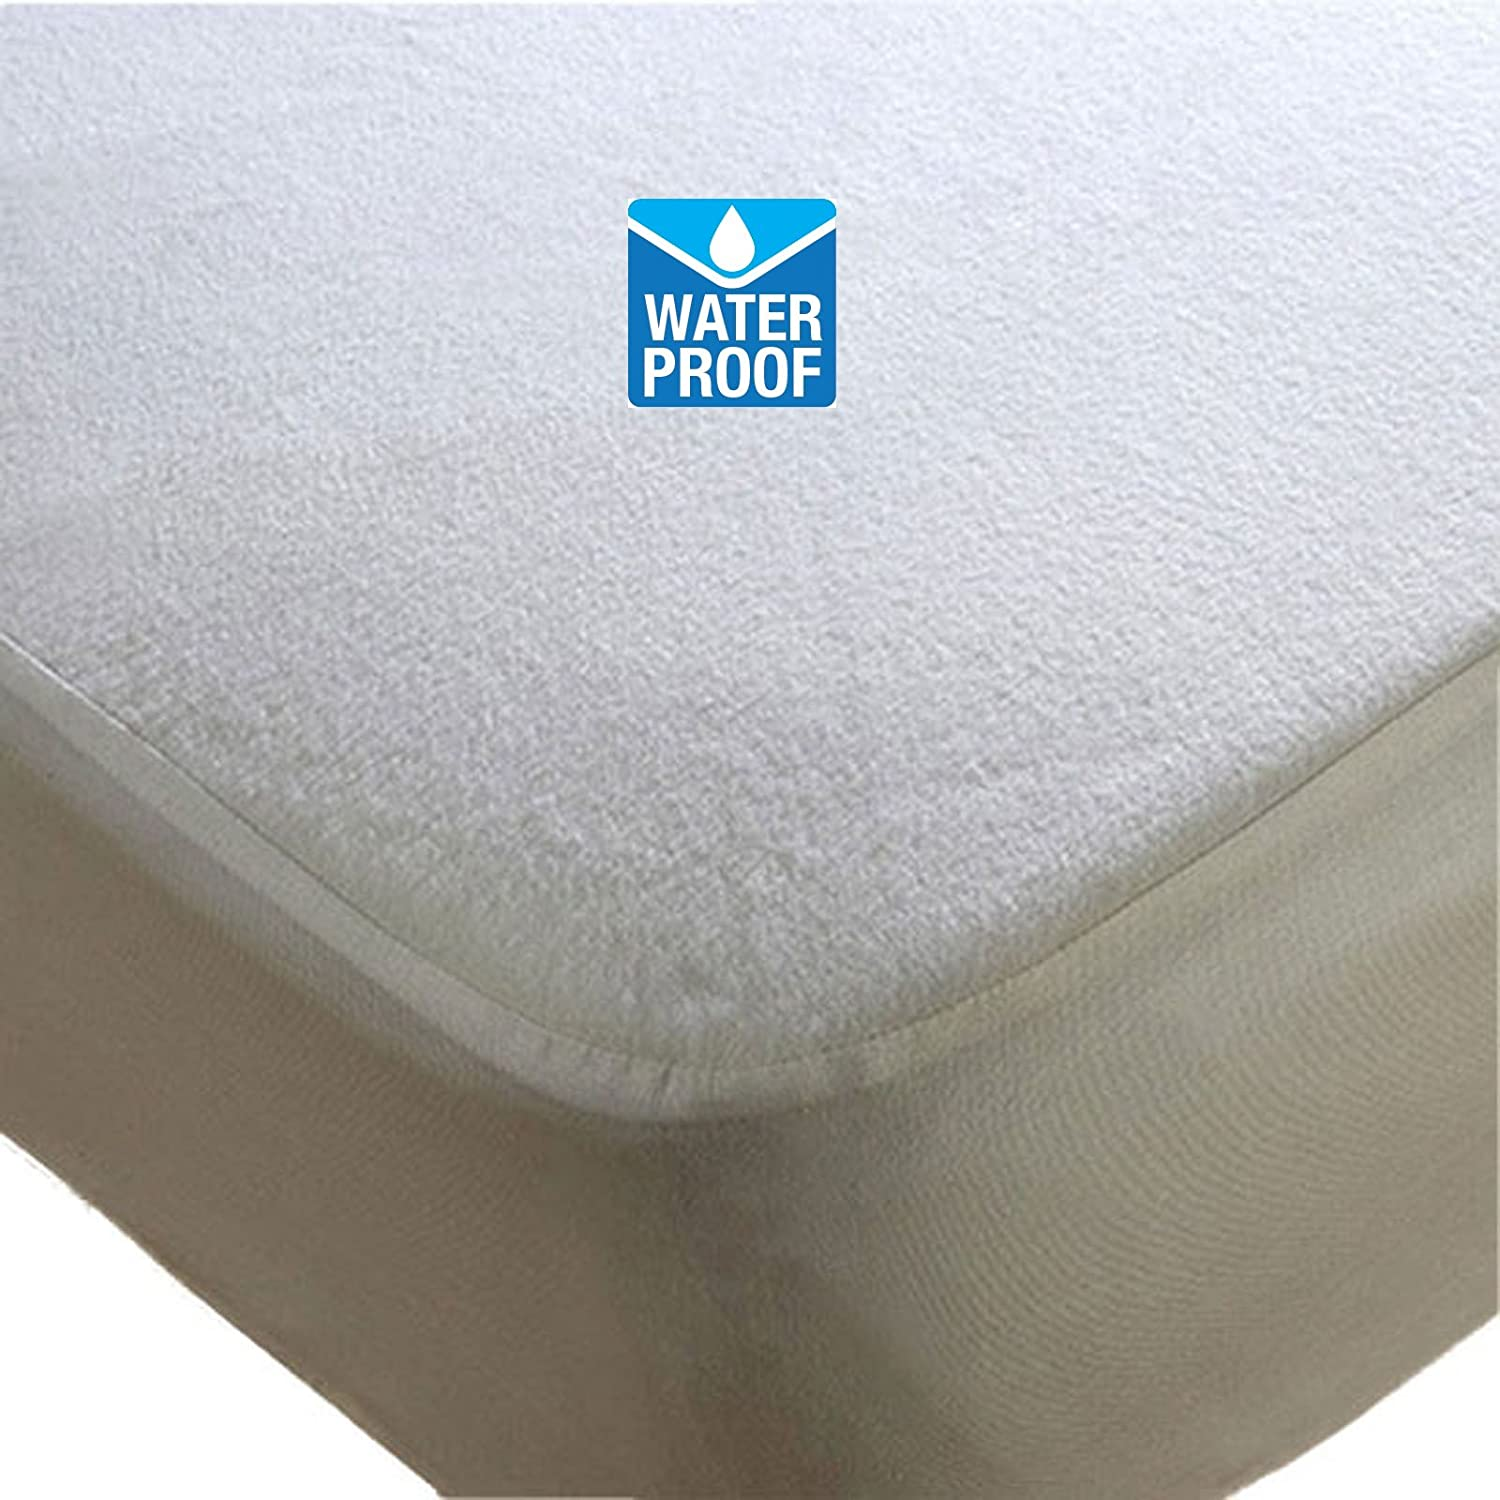 A1A AVENUE Terry Towel Waterproof Mattress Protector Mattress Fitted Cover (Cot-Bed)